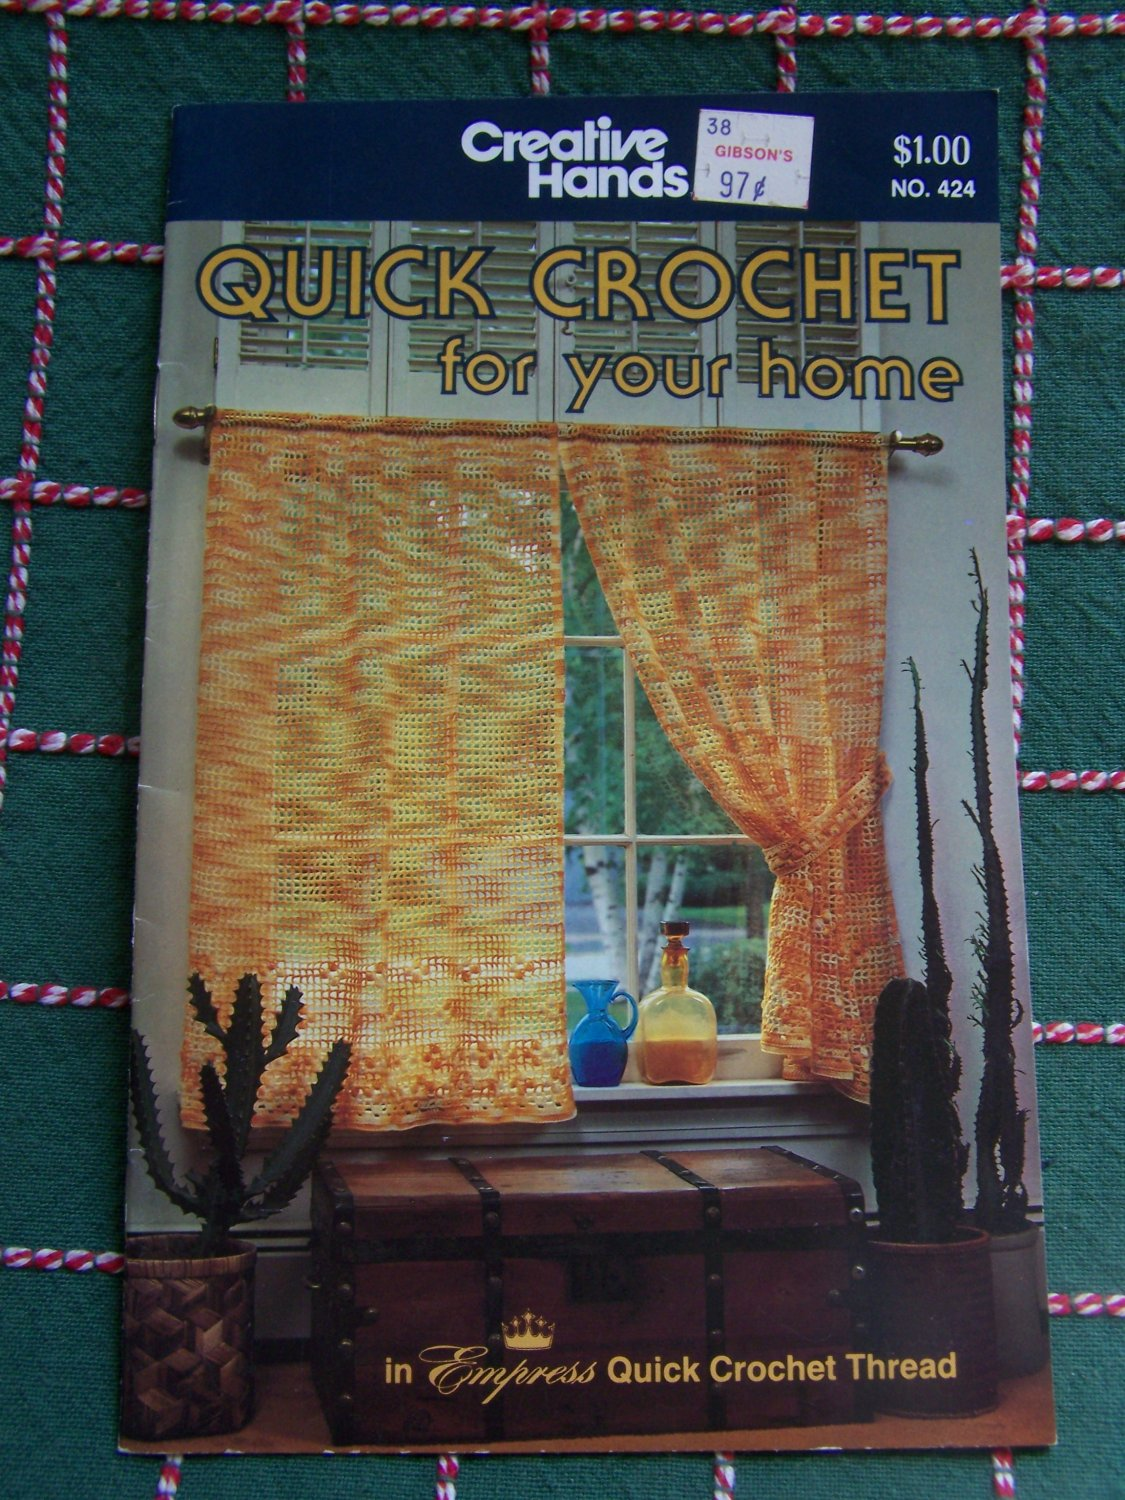 Vintage Creative Hands Crochet Home Patterns Curtains Colonial Bedspread County Fair Tablecloth 424